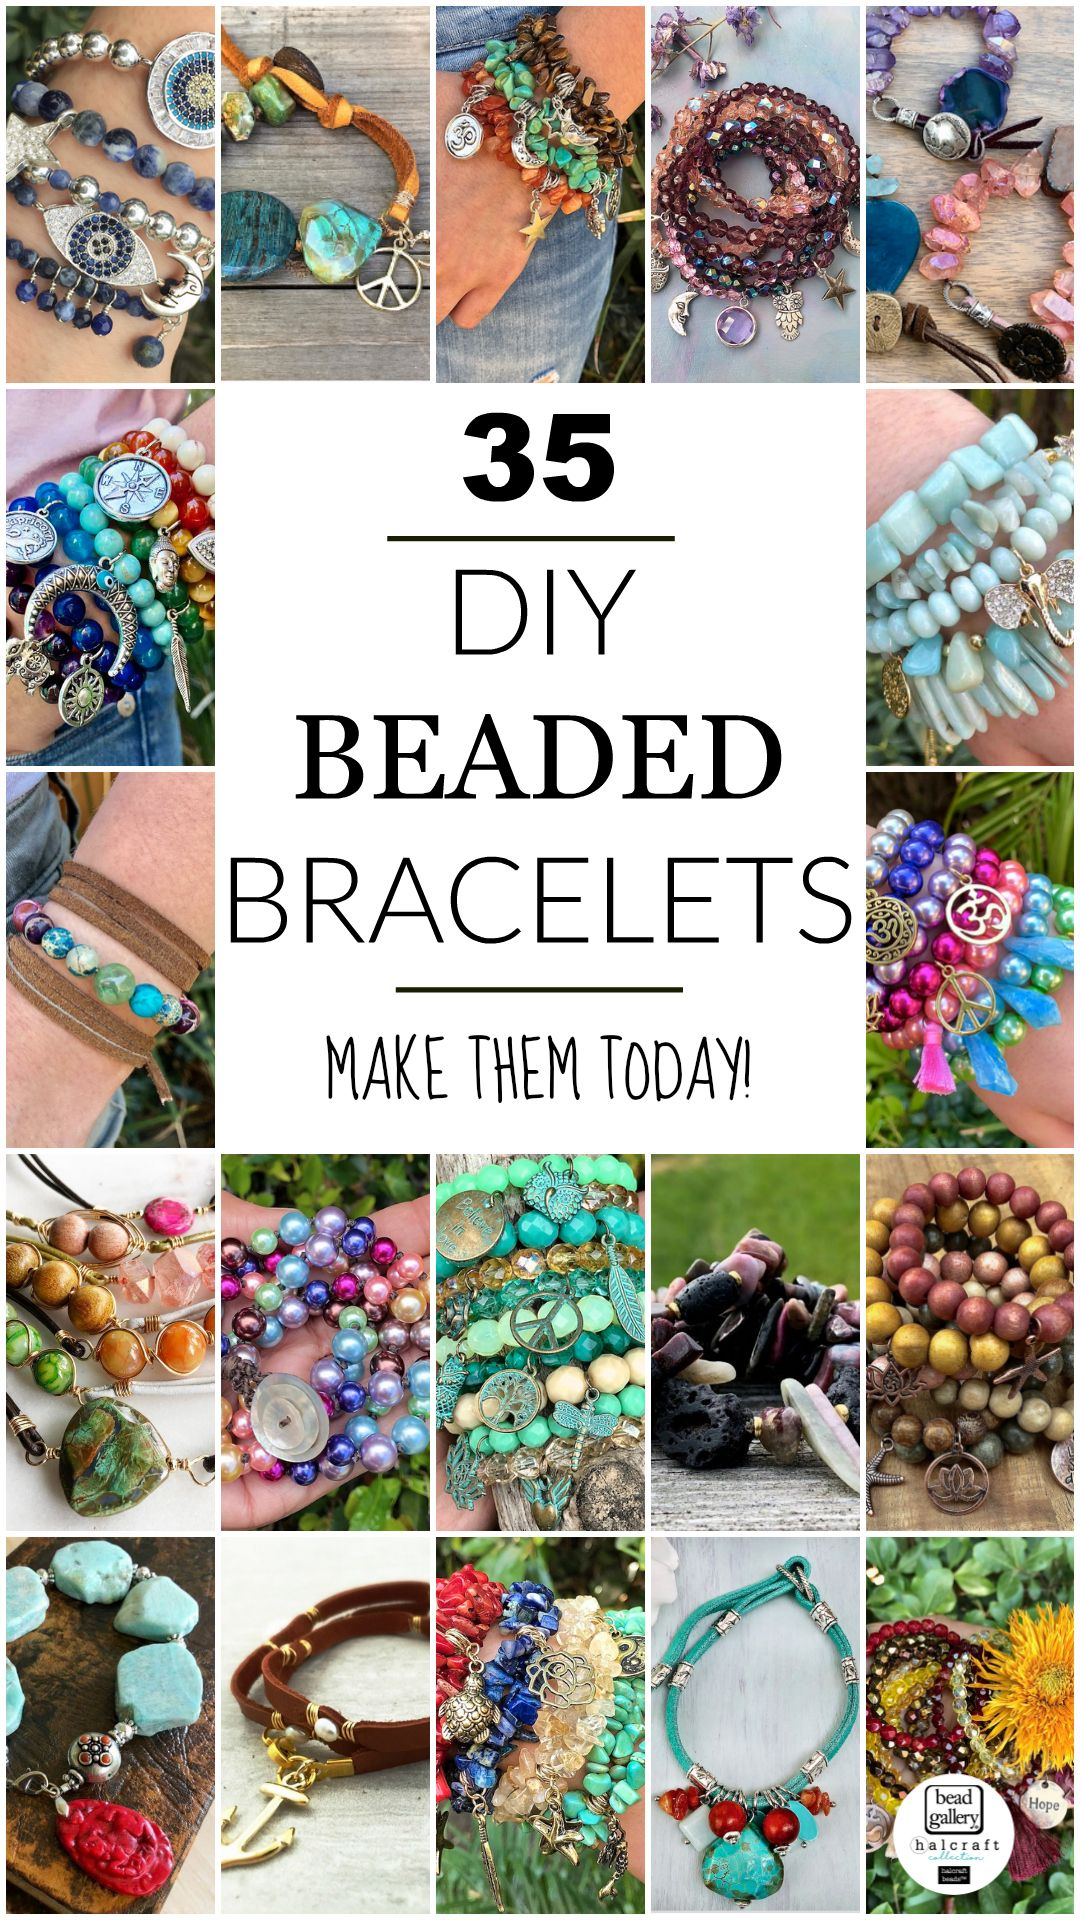 DIY Bracelets [category] is part of Beaded jewelry diy, Diy bracelet designs, Beaded bracelets diy, Diy beaded bracelets, Diy beads, Diy bracelets - July's Birthstone Red Hot Ruby